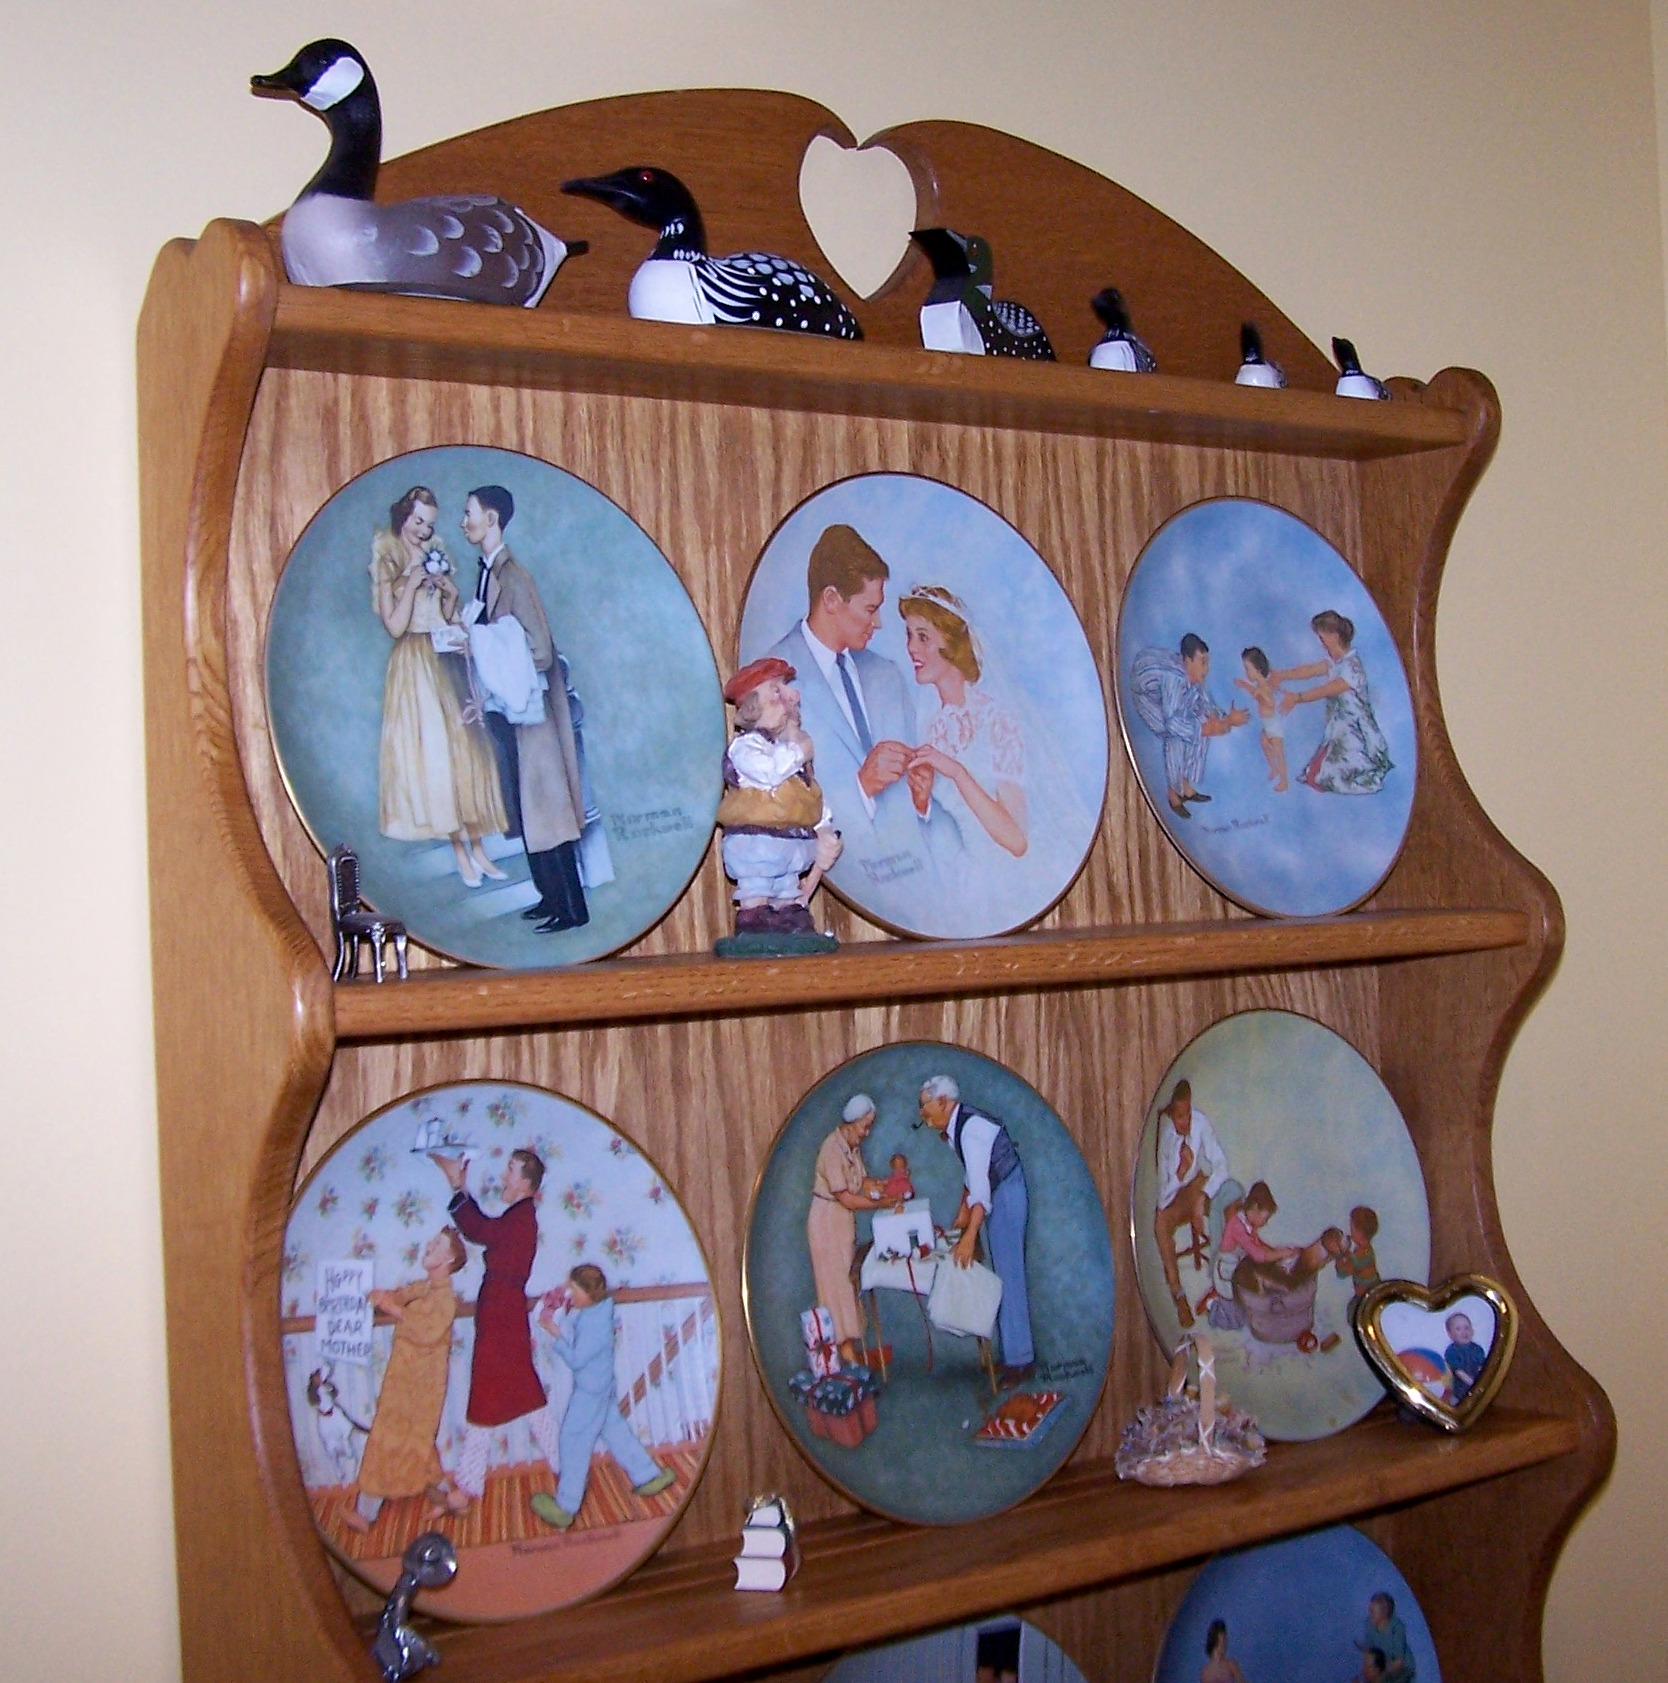 Oak Plate Hutch for displaying a collection of Norman Rockwell Plates.  Designed with a Valentines Theme